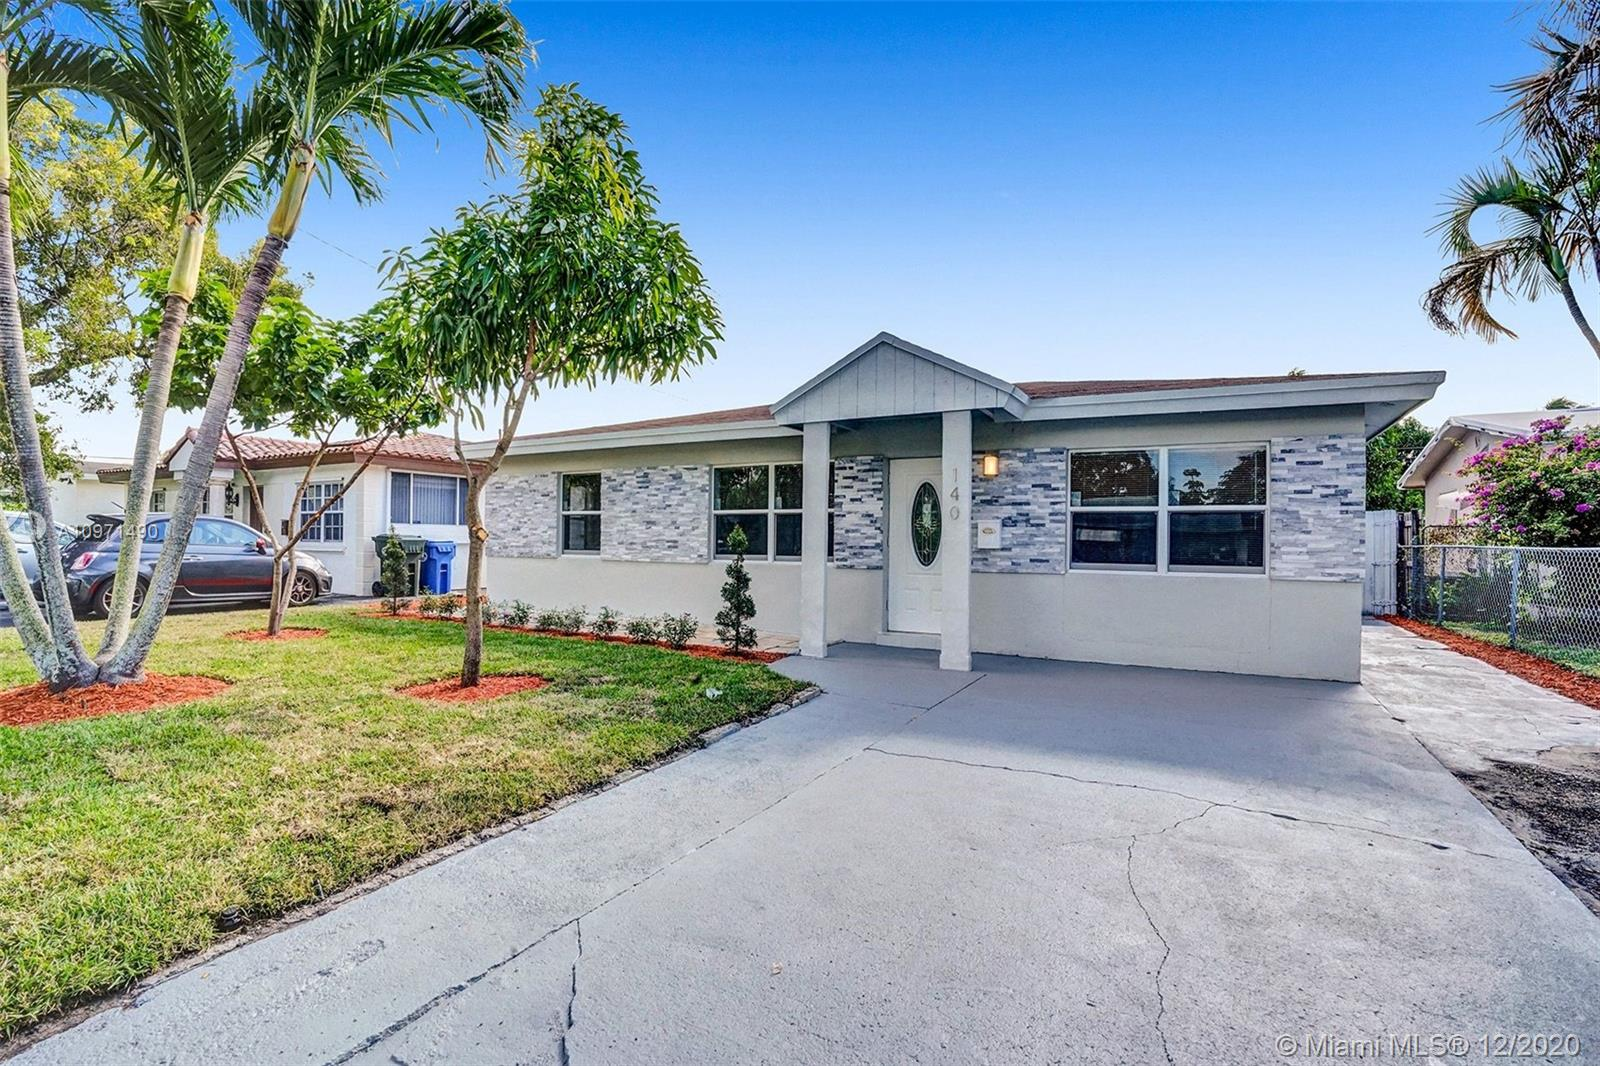 BEAUTIFULLY FULLY REMODELED 3 BEDROOM 2 BATHROOM HOME IN THE HEART OF OAKLAND PARK! PERFECT TURN-KEY HOME OR VACATION RENTAL OPPORTUNITY! HOME FEATURES ALL HURRICANE IMPACT WINDOWS AND DOORS, 2010 SHINGLE ROOF, BRAND NEW FLAT ROOF, BRAND NEW 2020 A/C UNIT, NEW ELECTRIC TANKLESS WATER HEATER, NEW BATHROOMS, SEPARATE LAUNDRY ROOM WITH NEW WASHER AND DRYER, NEW IRRIGATION SYSTEMS WITH NEW PLANTS, NEW CUSTOM KITCHEN WITH HIGH-END EUROPEAN CABINETS, BRAND NEW STAINLESS STEEL APPLIANCES, QUARTZ COUNTERTOP, RECESSED LIGHTING THROUGHOUT, VERY LARGE BACKYARD NICE FOR ENTERTAINMENT OR TO BUILD A POOL, SPACIOUS DRIVEWAY, FRESHLY PAINTED INSIDE/OUT, COVERED SPACIOUS PATIO AREA... MINUTES FROM SCHOOLS, BEACH, SHOPPING PLAZAS, ETC... HURRY THIS WONT LAST LONG!!